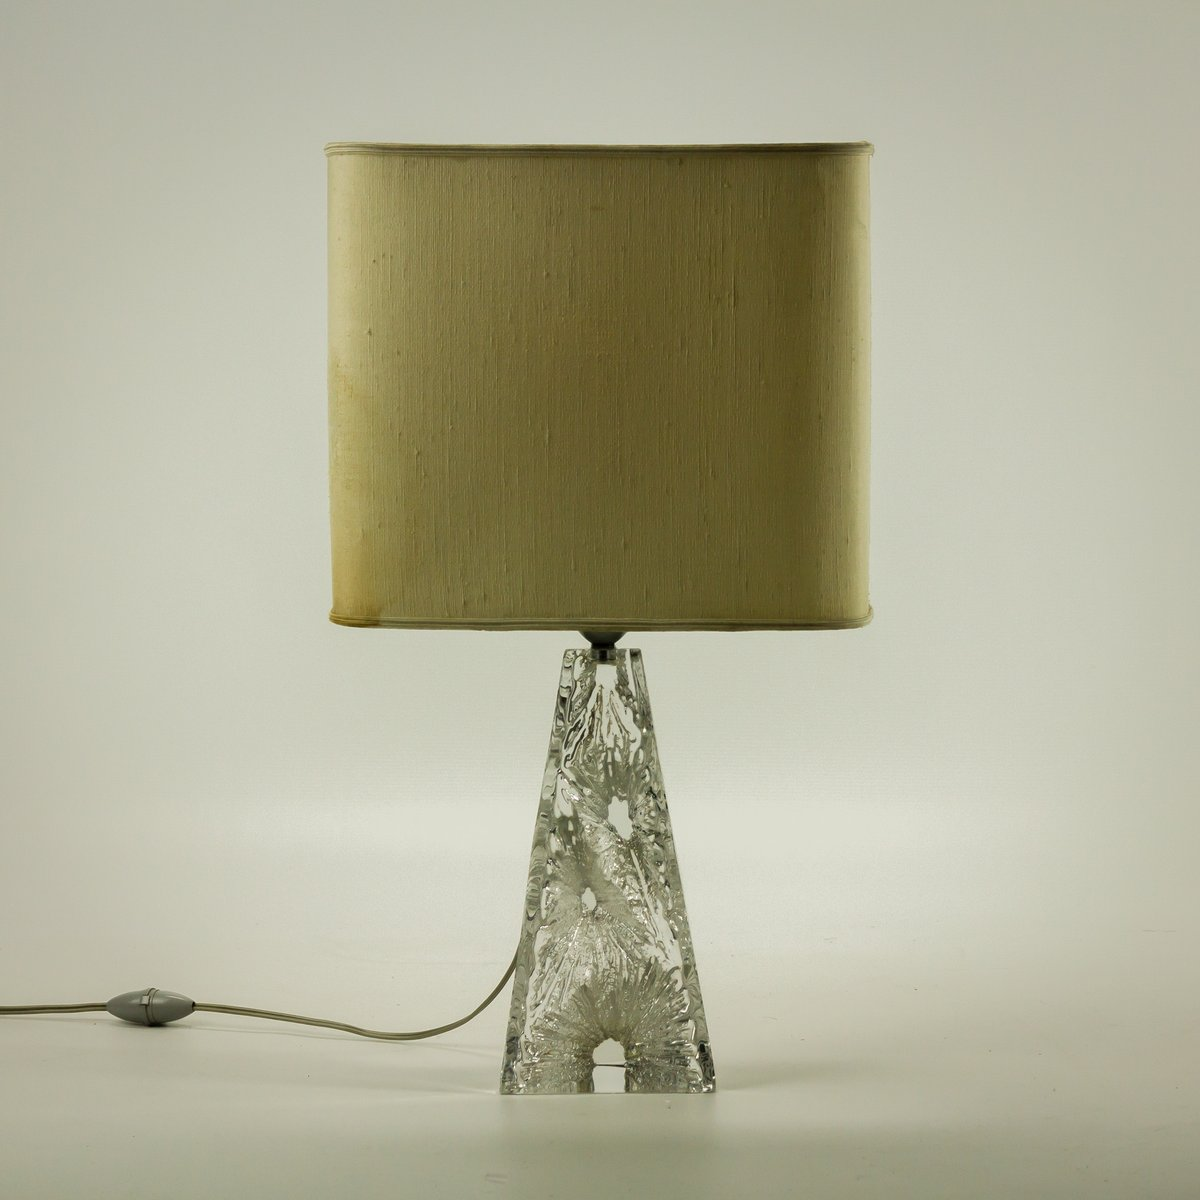 carved crystal base table lamp from daum for sale at pamono. Black Bedroom Furniture Sets. Home Design Ideas